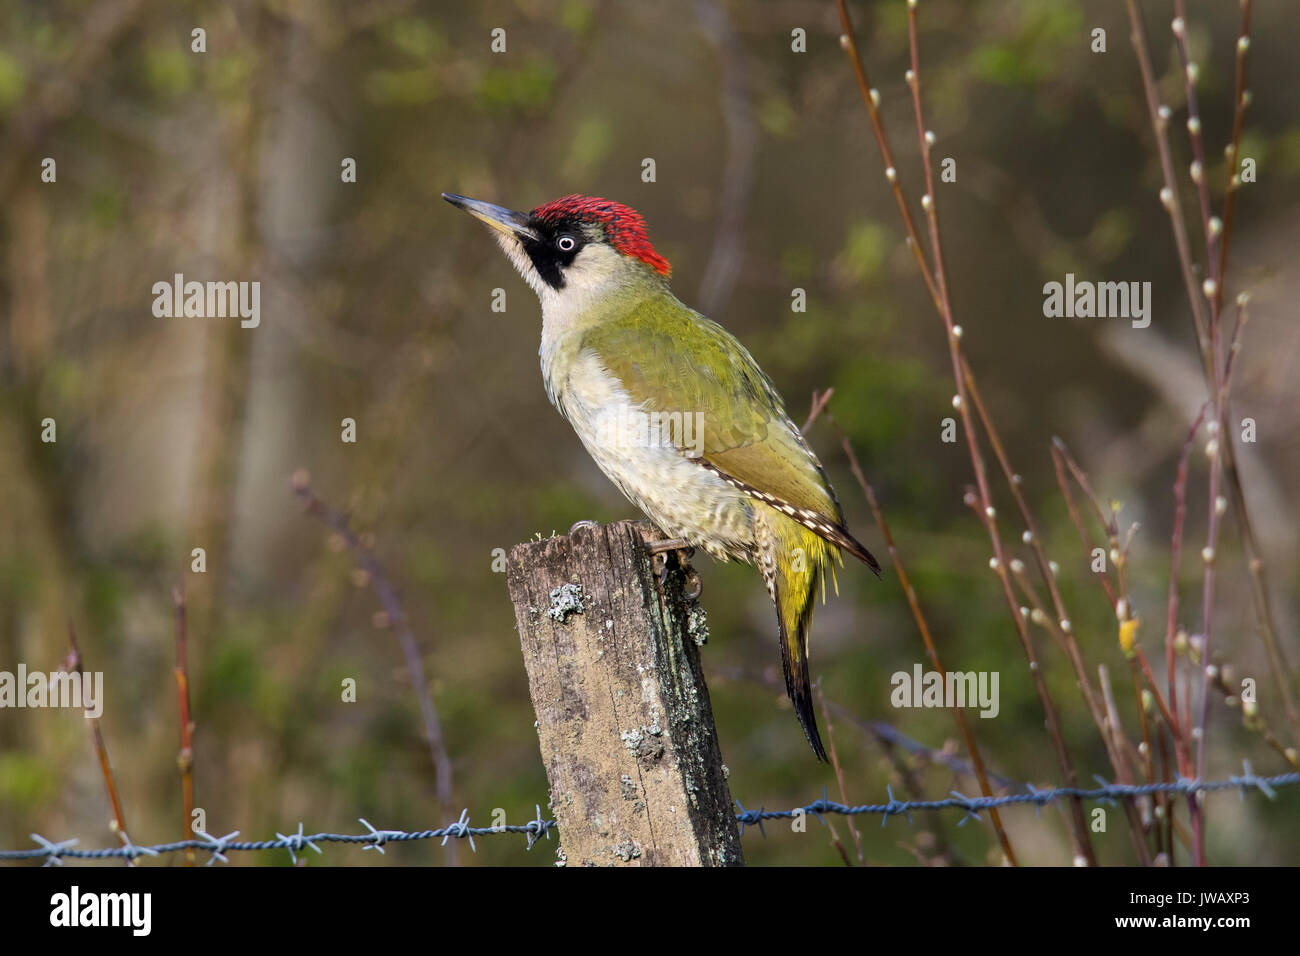 European green woodpecker (Picus viridis) female perched on old wooden fence post - Stock Image